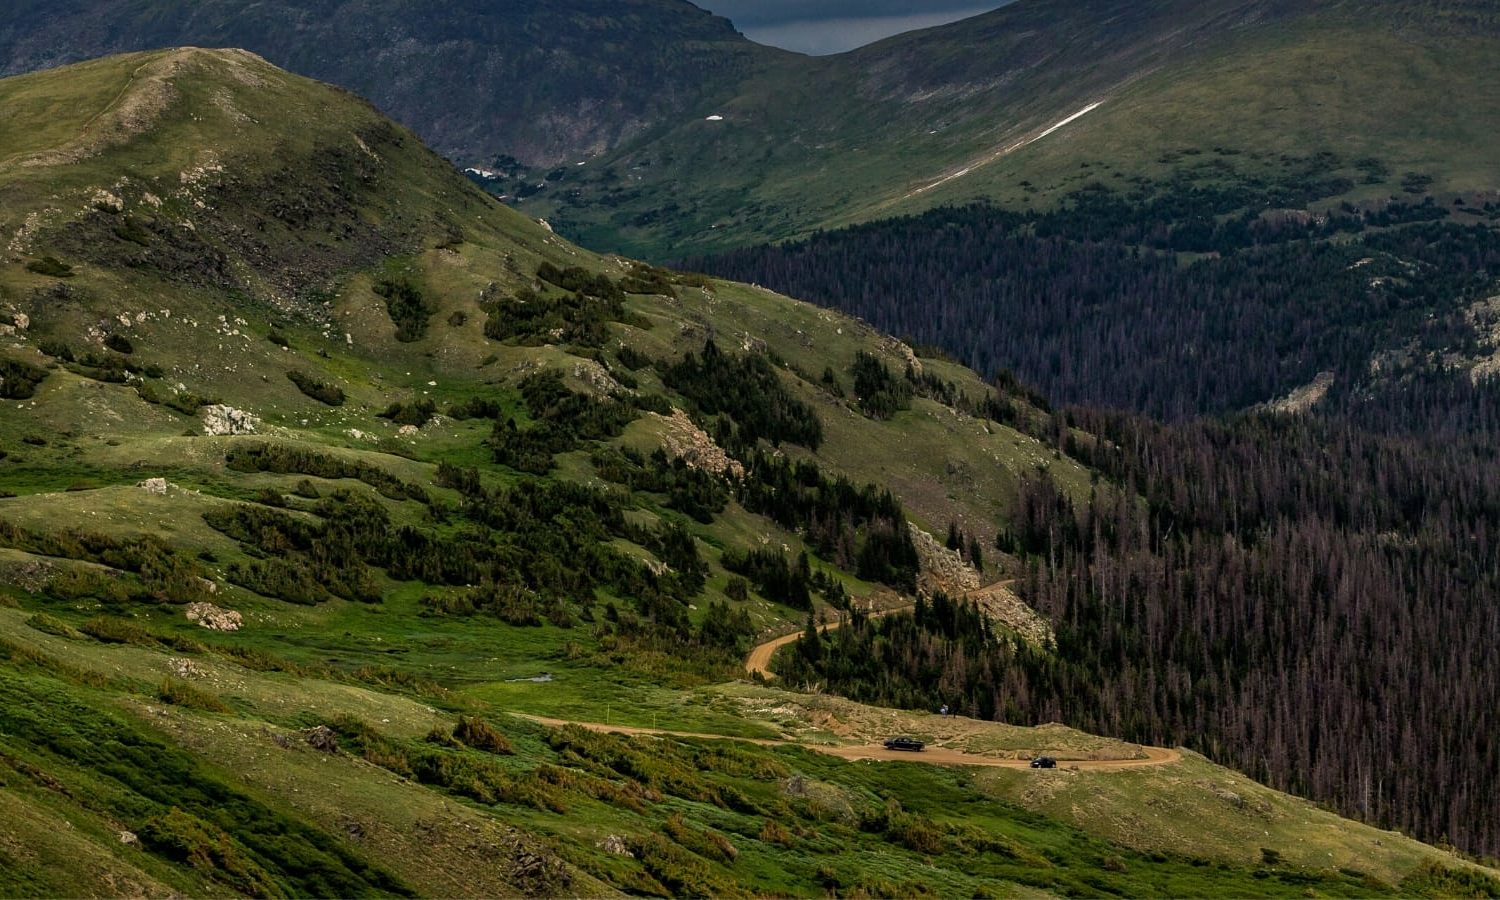 GyPSy Guide Audio Driving Tour App Rocky Mountain National Park